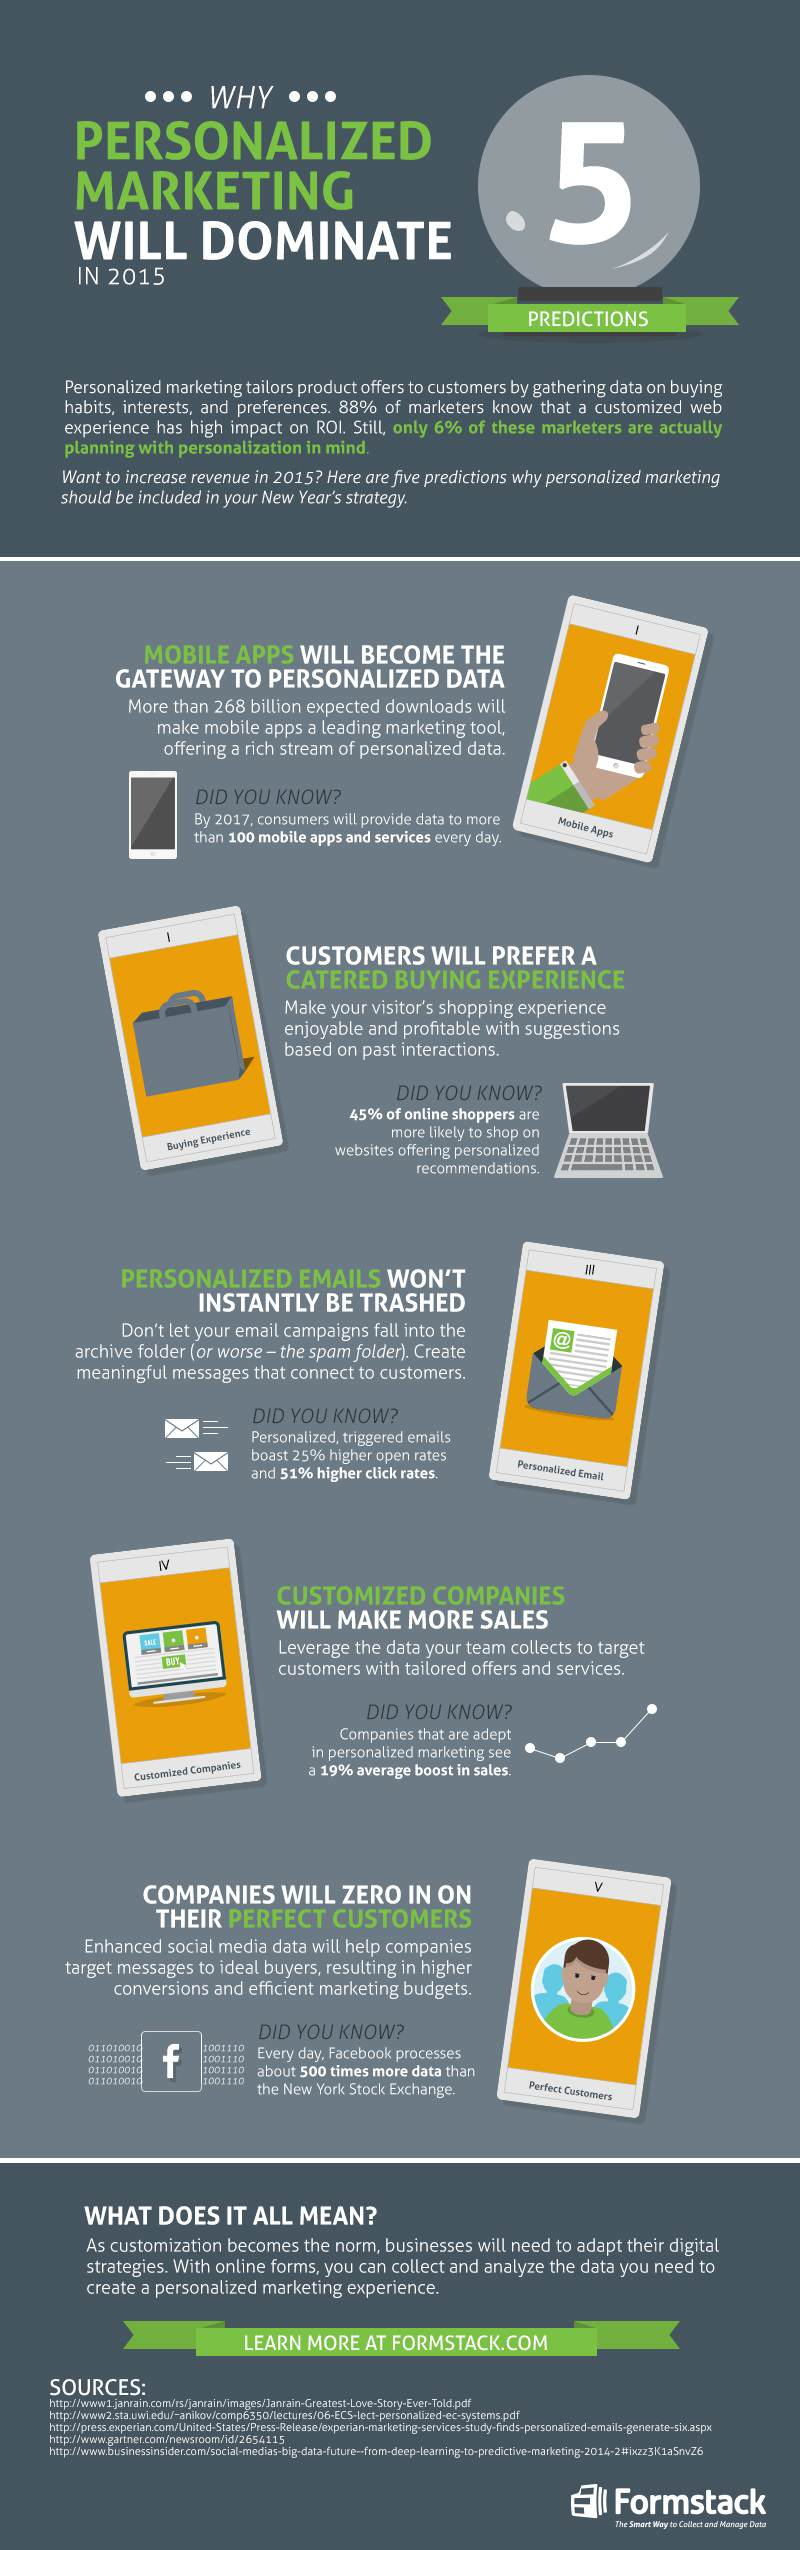 why-personalized-marketing-will-dominate-in-2015-infographic